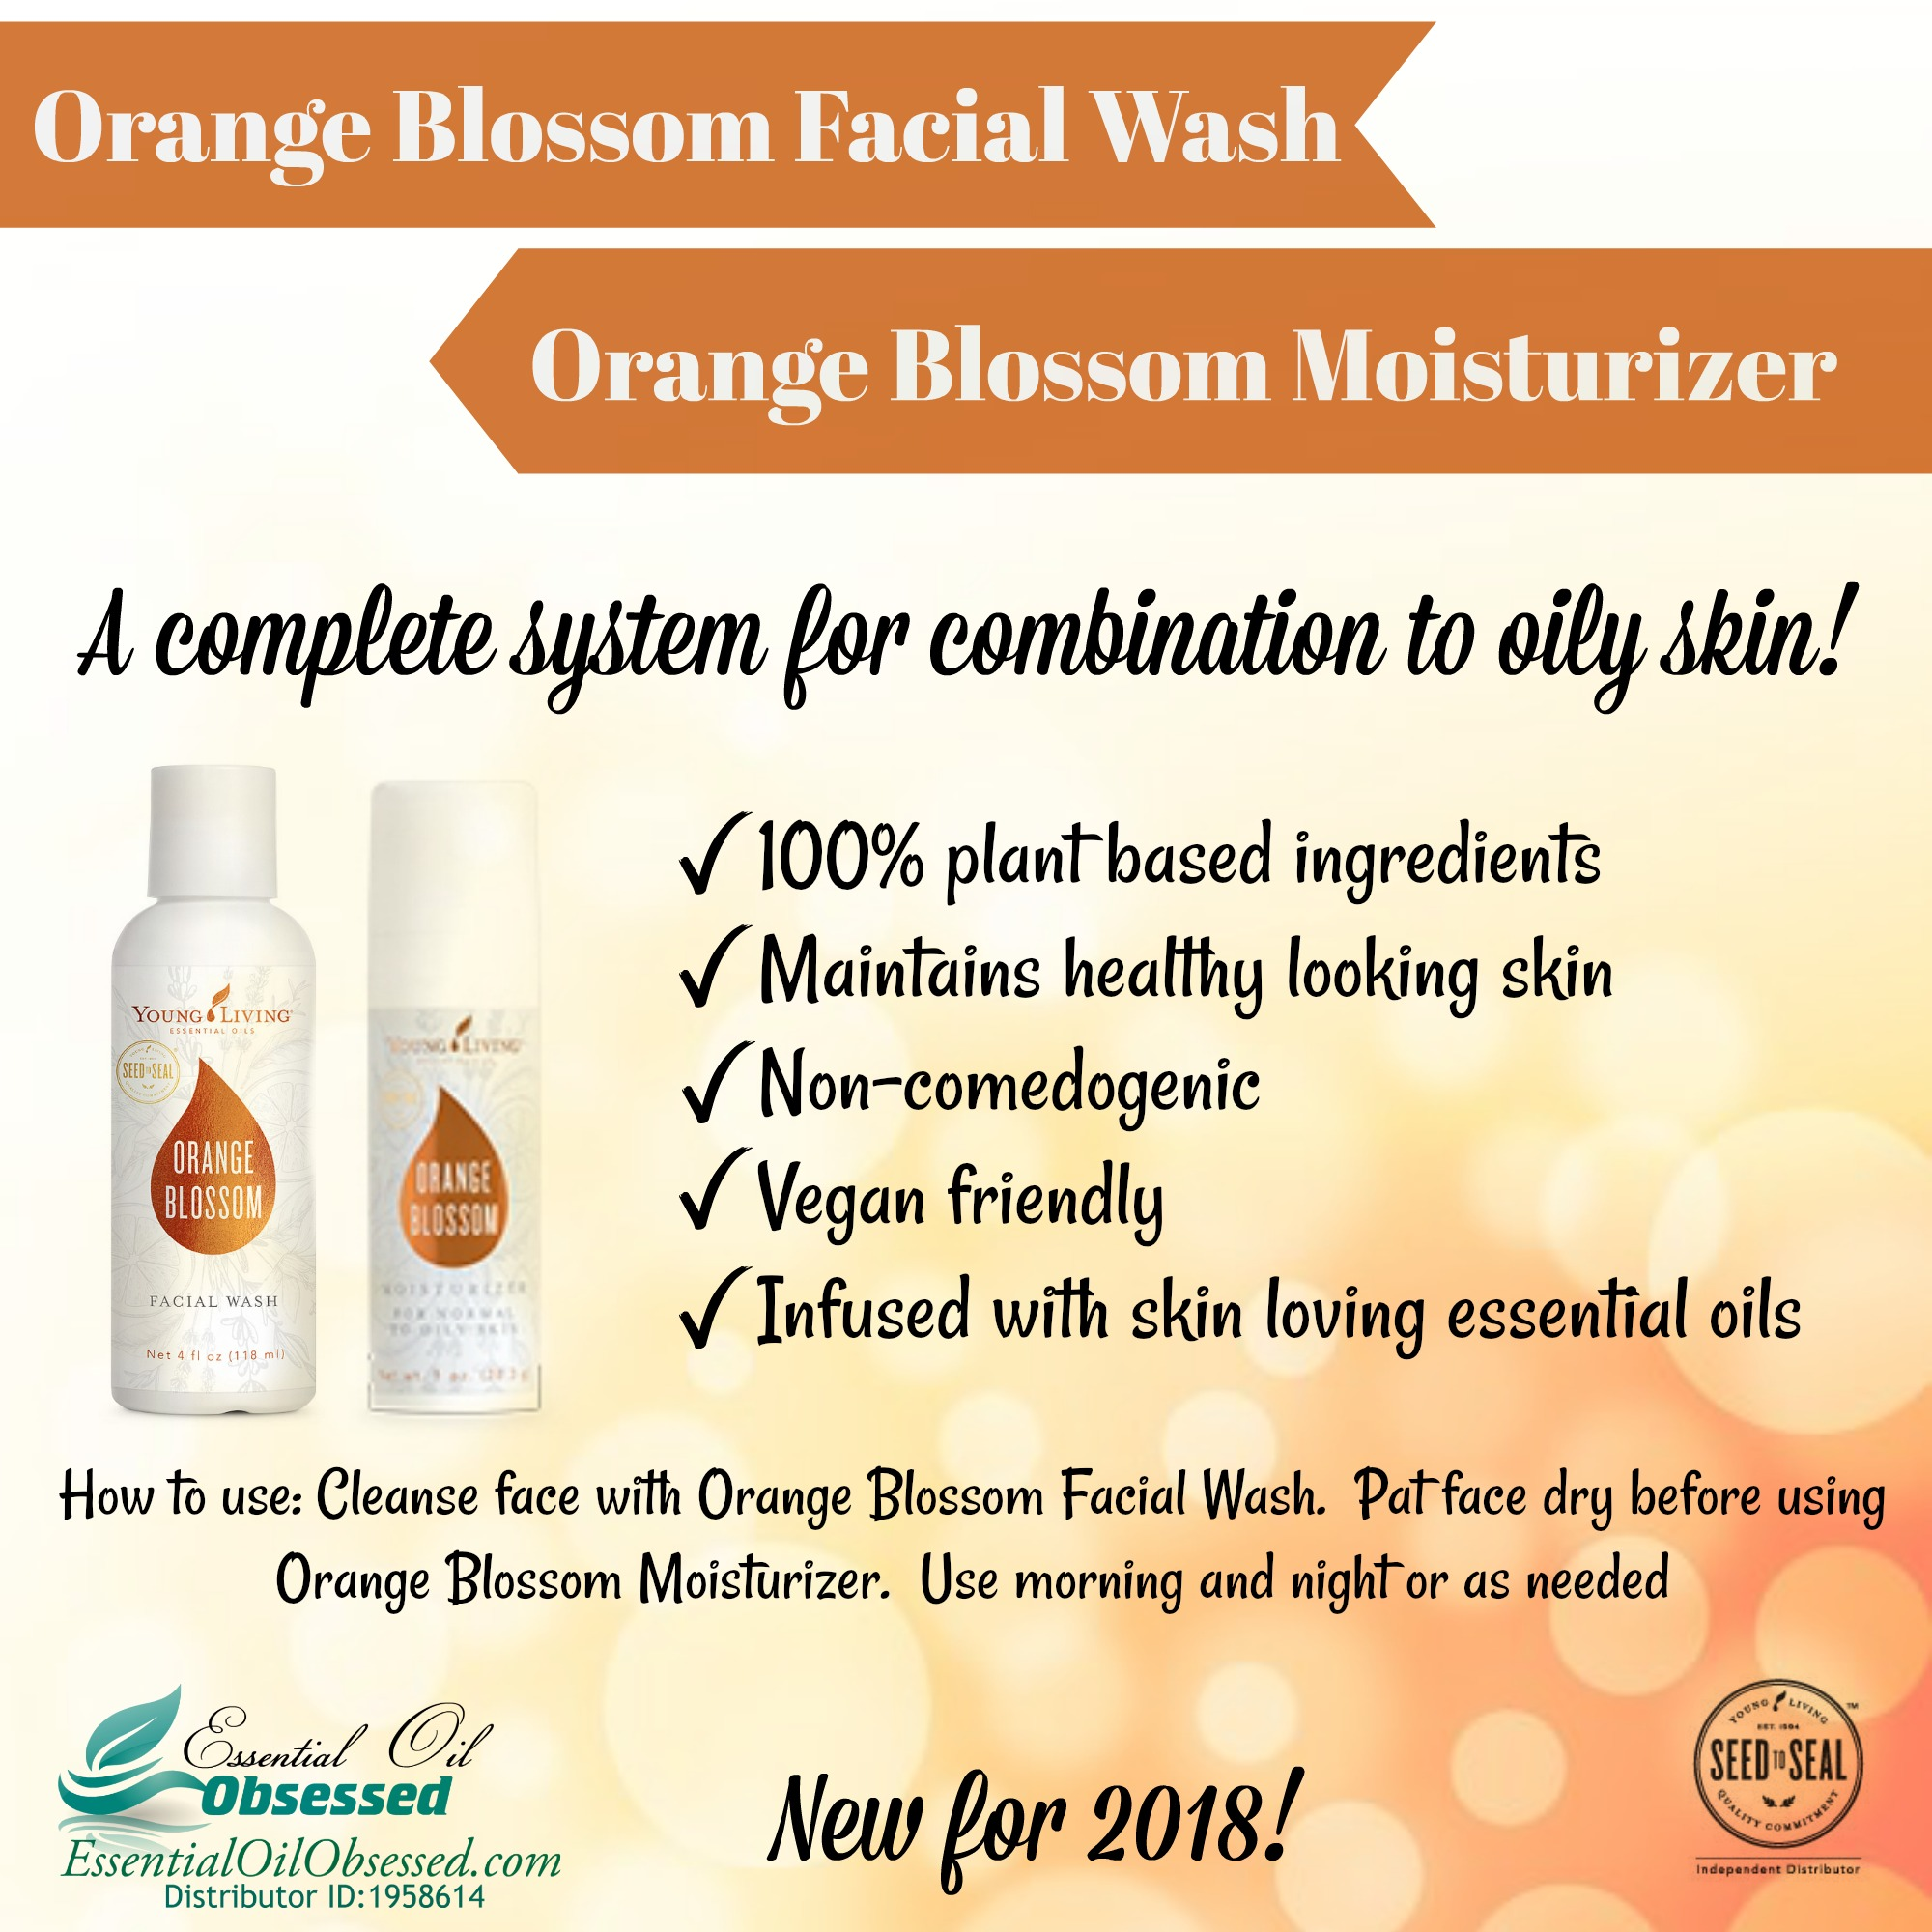 Orange Blossom Facial Wash and Moisturizer